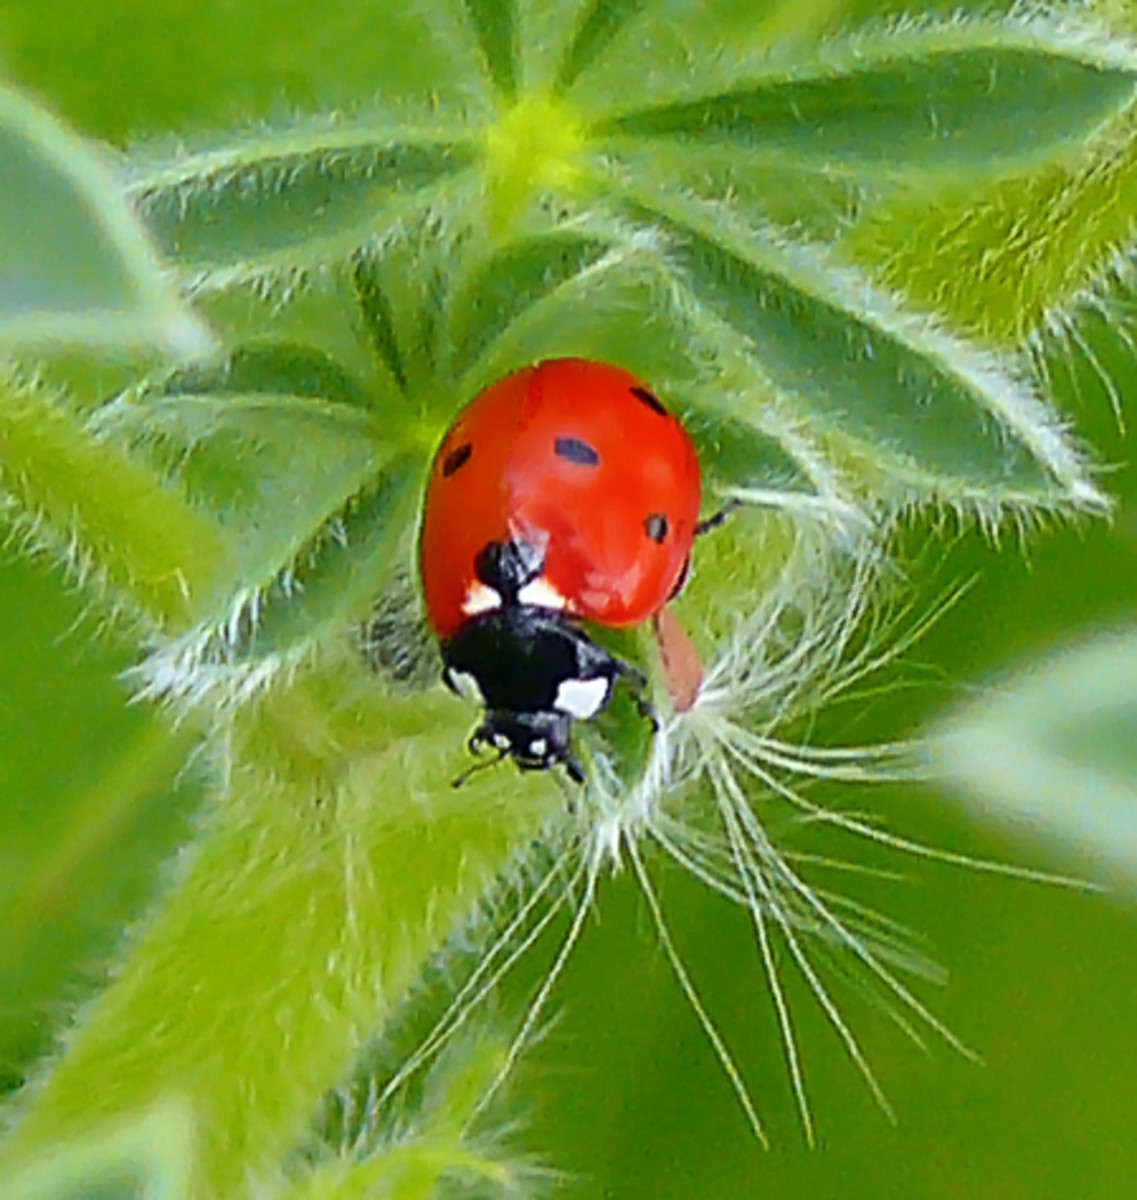 Attracting Ladybugs into the garden